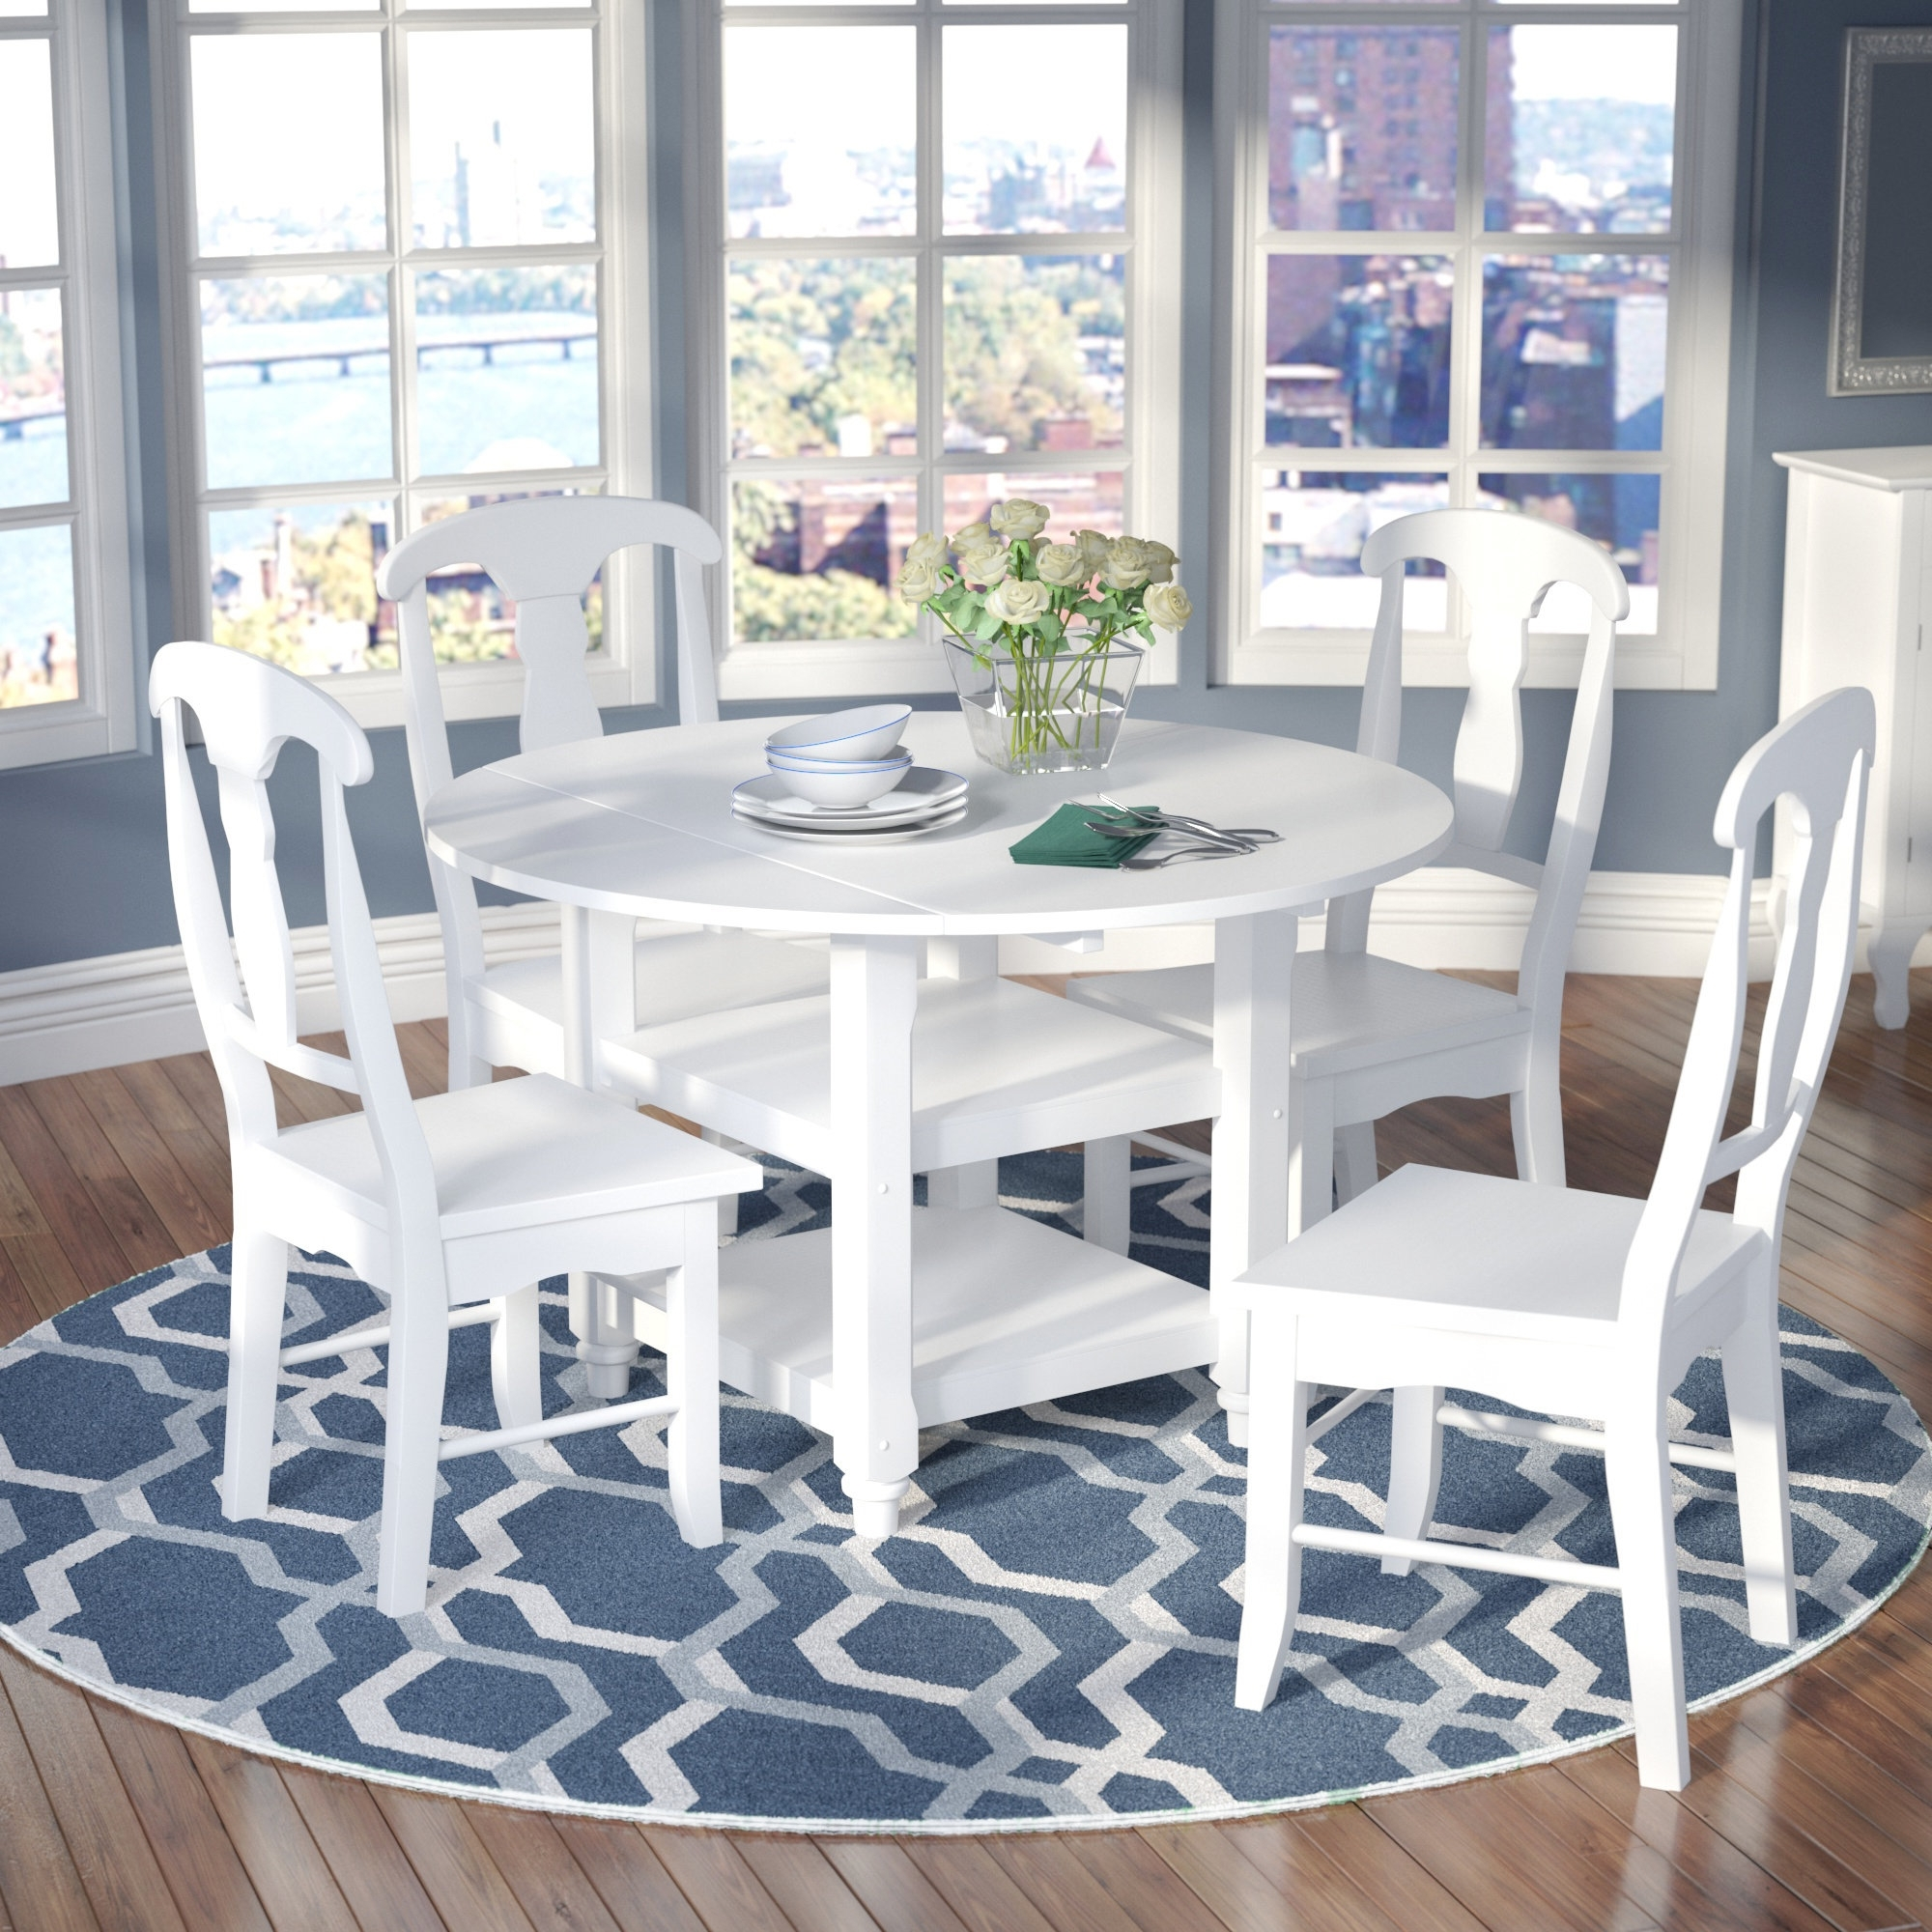 Jaxon 5 Piece Extension Round Dining Sets With Wood Chairs For Preferred Alcott Hill Harwick 5 Piece Dining Set & Reviews (View 6 of 25)